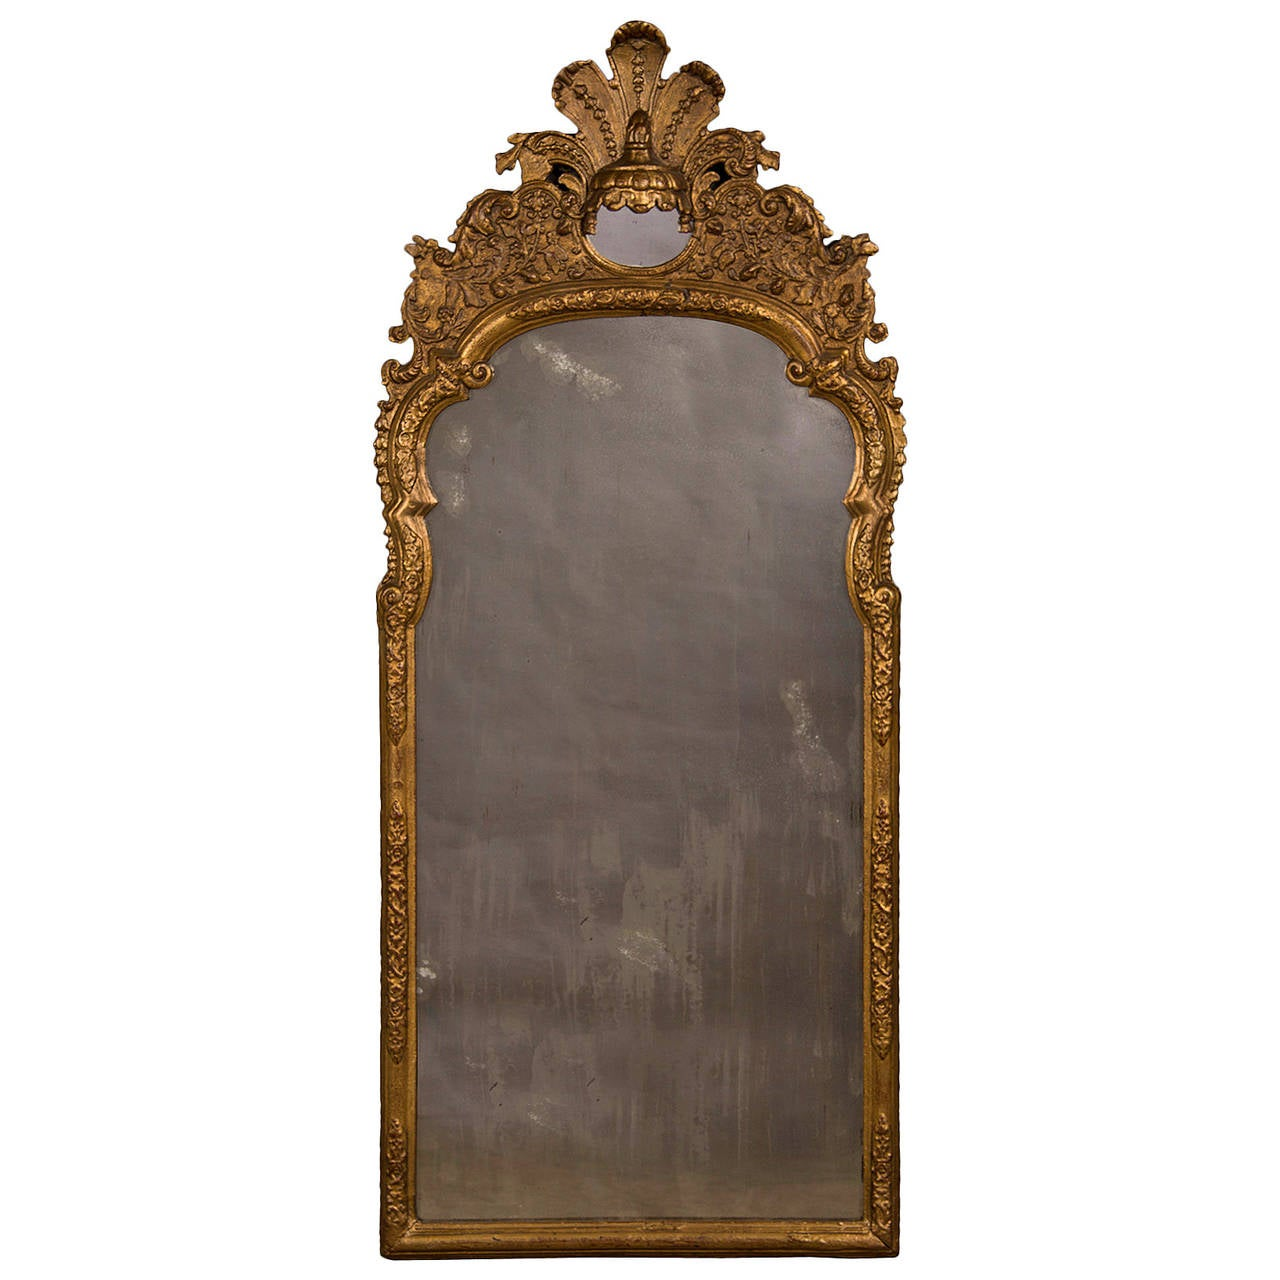 Arched gilt mirror at 1stdibs - Antique Italian Neoclassical Gilded Mirror Circa 1790 1